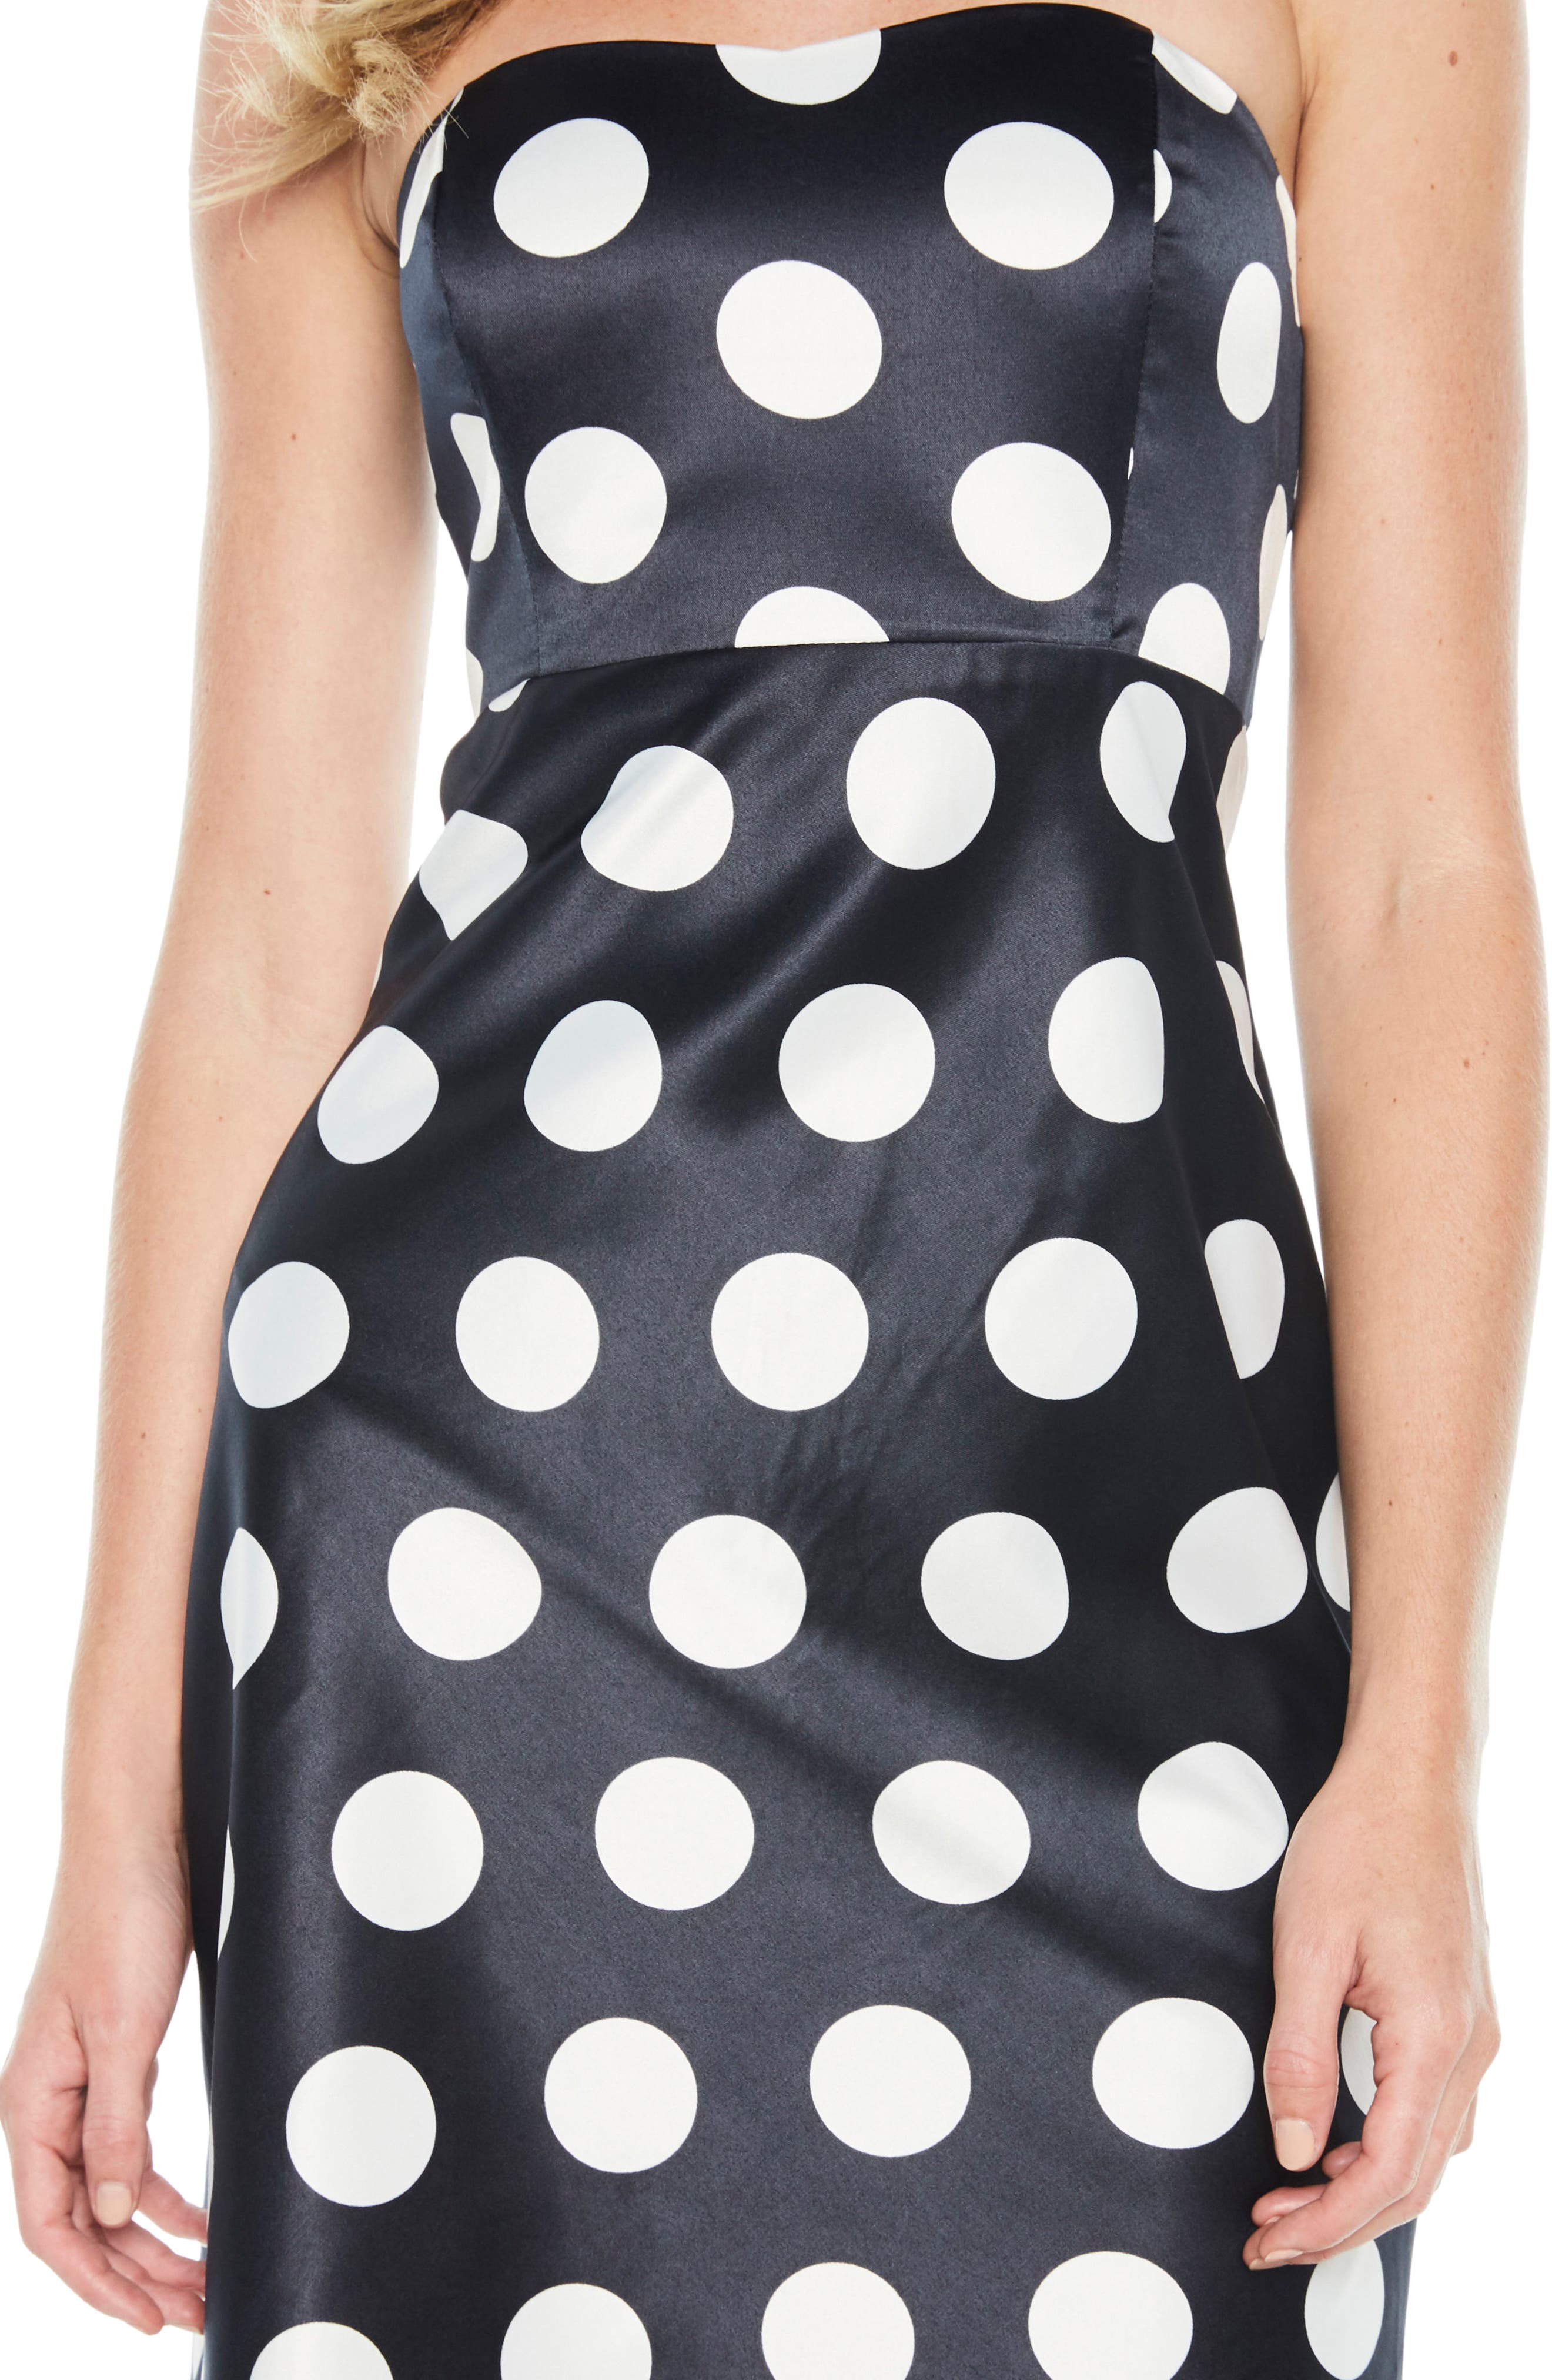 Sayer Dotted Tie Back Strapless Dress,                             Alternate thumbnail 4, color,                             486